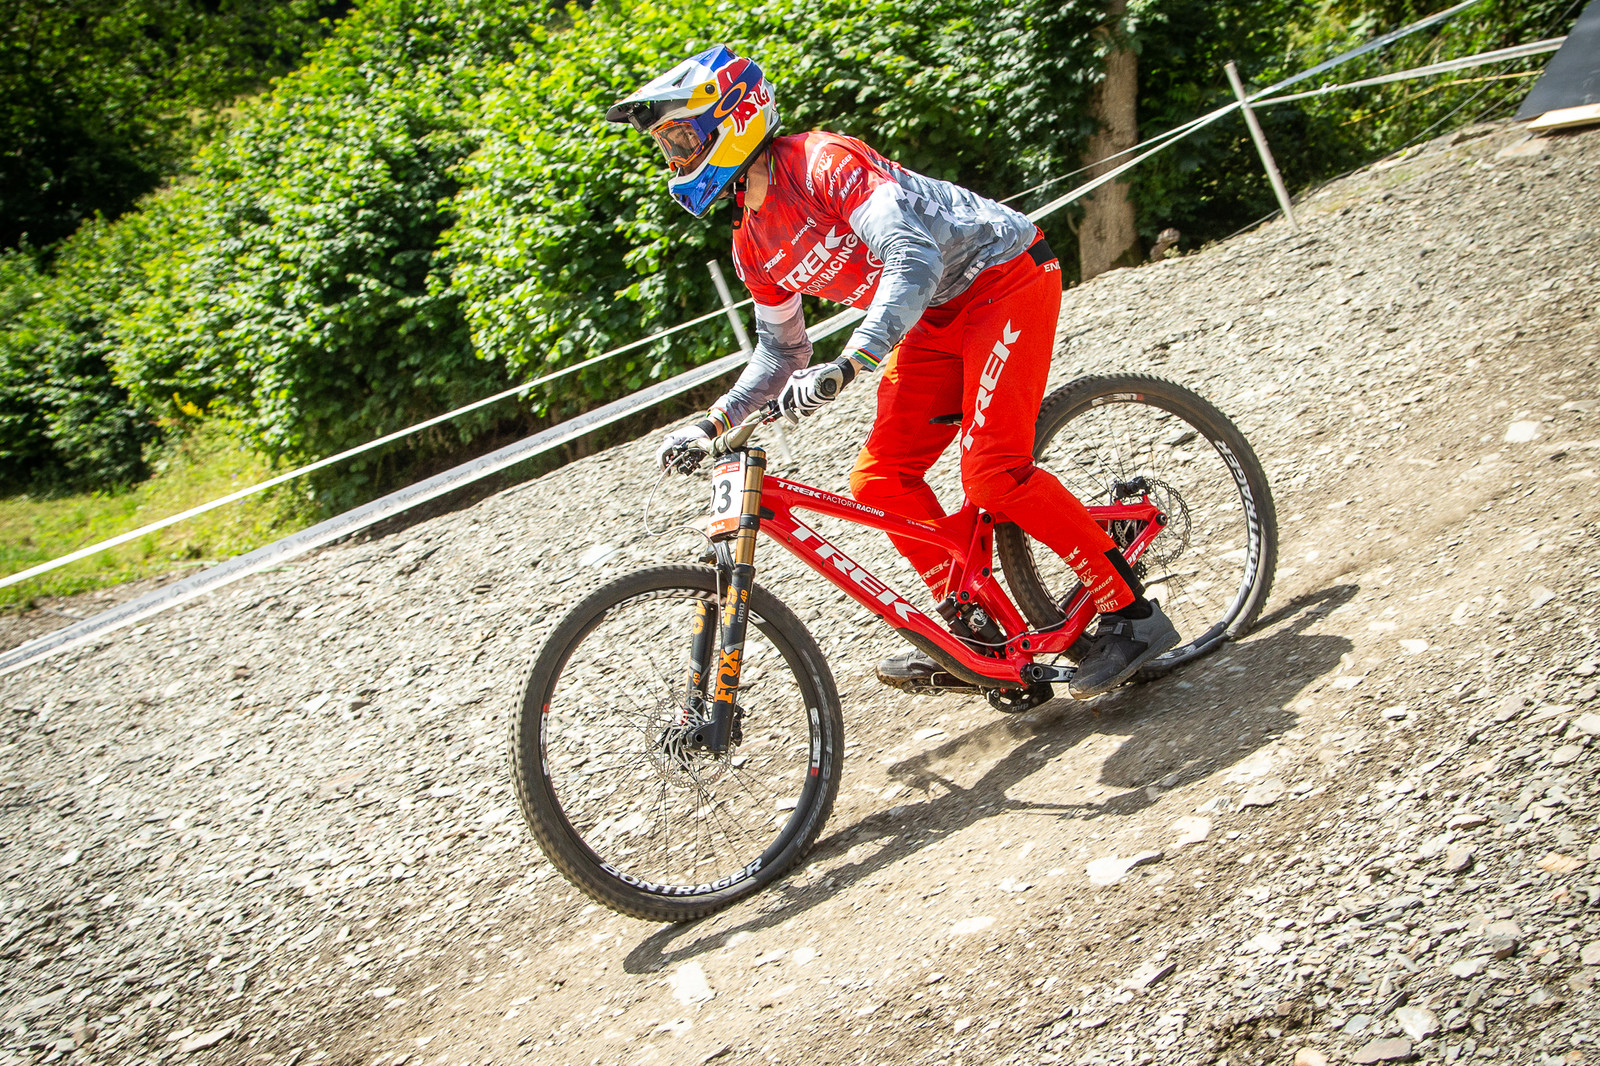 Gee Atherton Trek Session 29 - G-Out Project - Andorra World Cup DH - Mountain Biking Pictures - Vital MTB